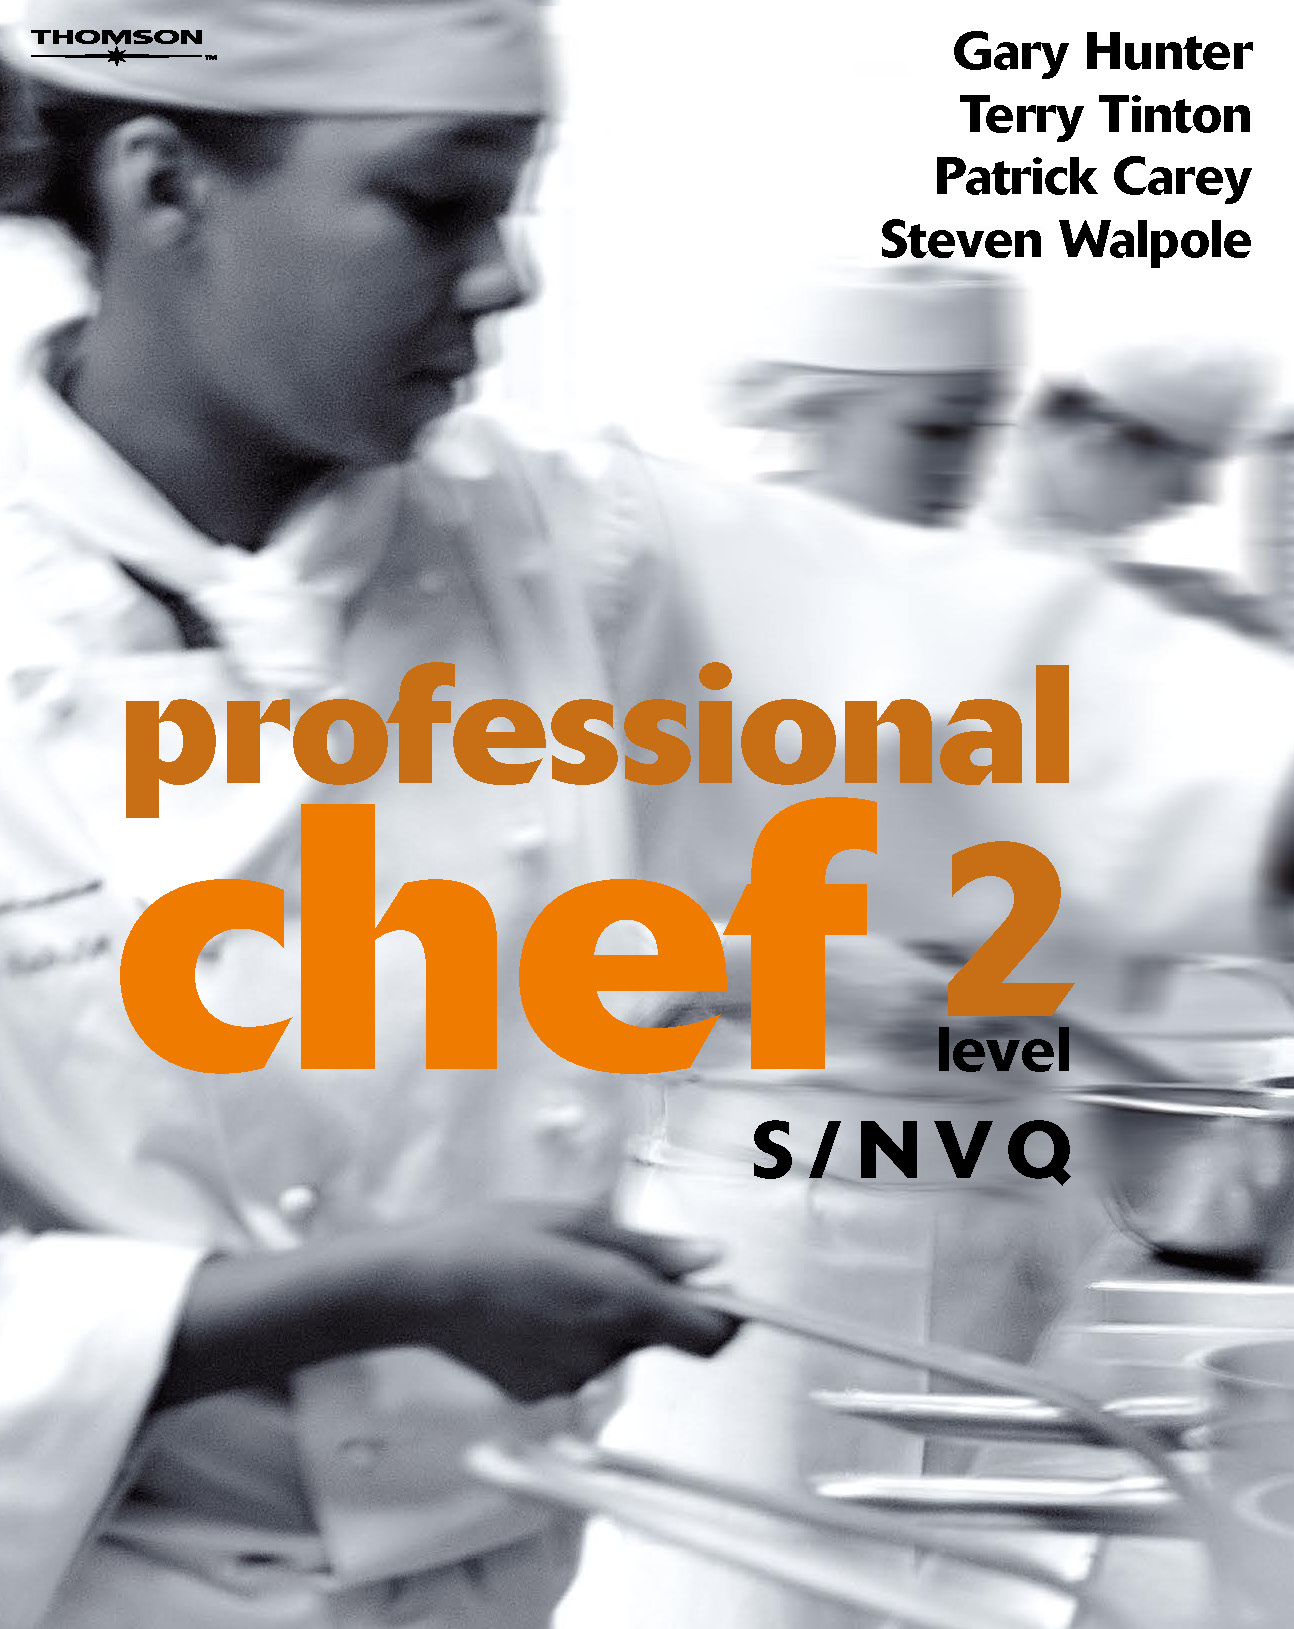 Tourism 9781408088432 cengage professional chef level 2 snvq fandeluxe Gallery